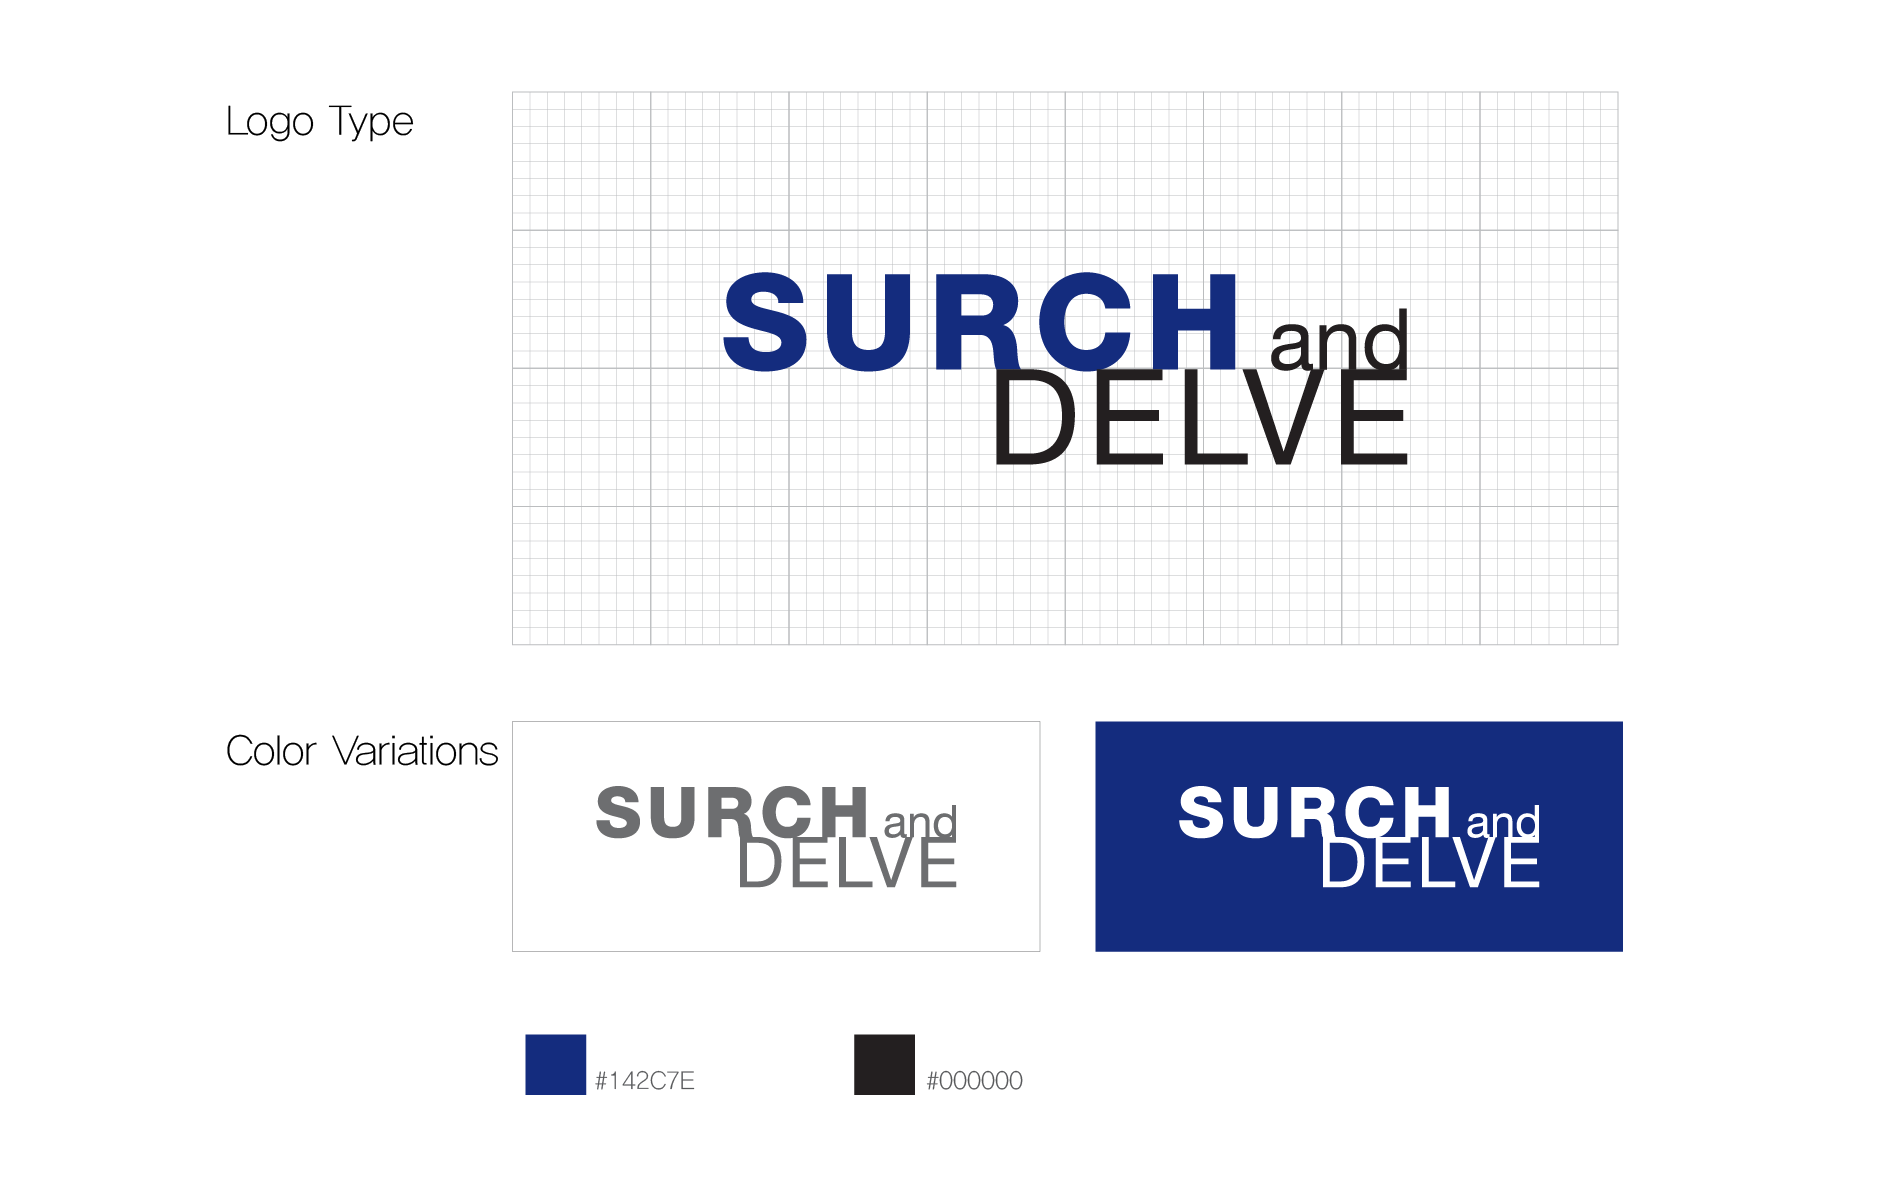 Surch and Delve_C.I